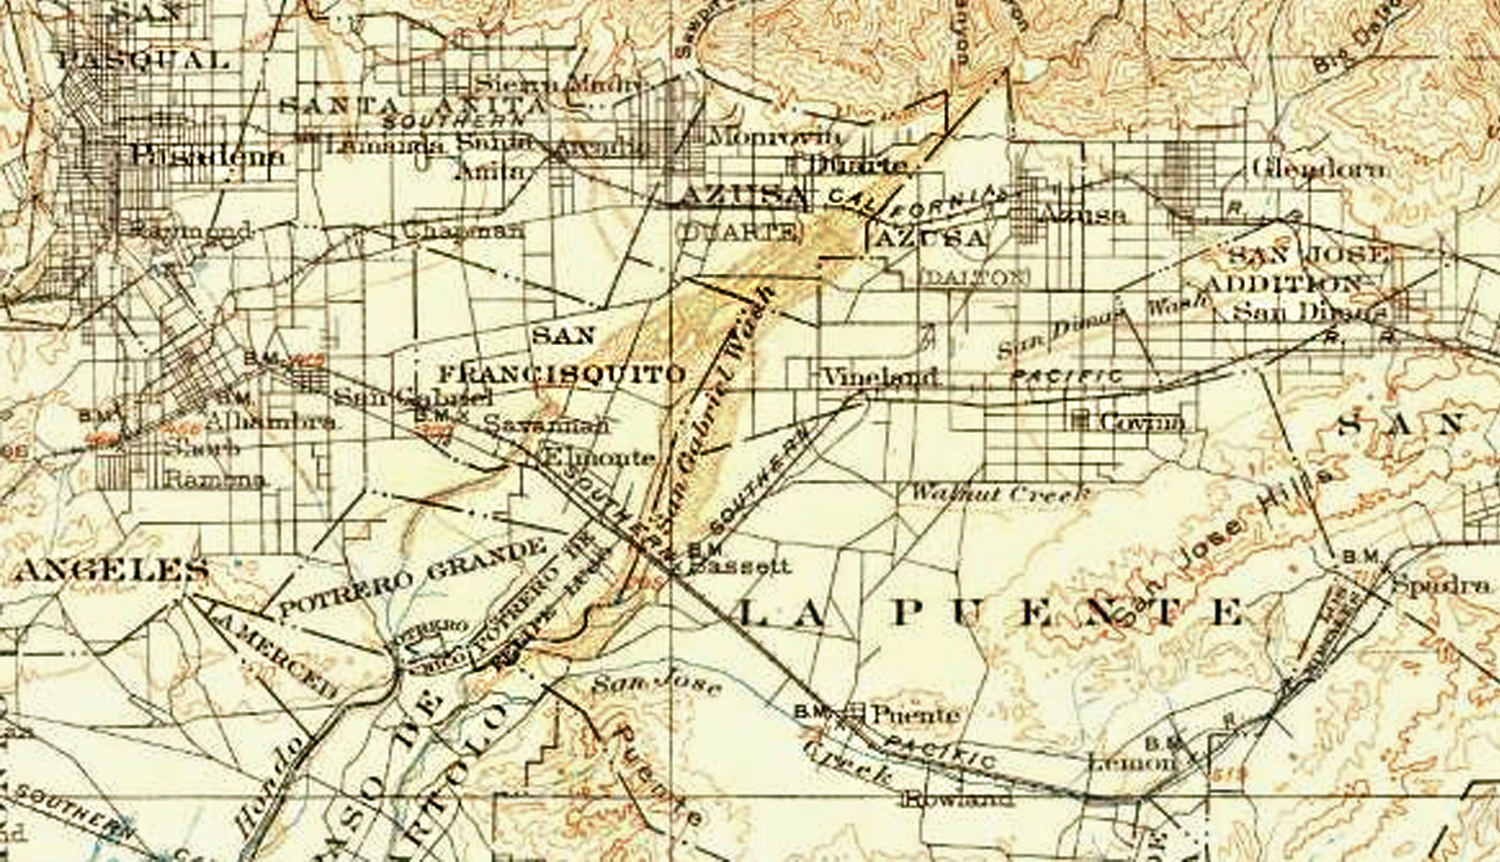 Map of the San Gabriel Wash in 1900 courtesy of the US Geological Survey Historical Topographic Maps